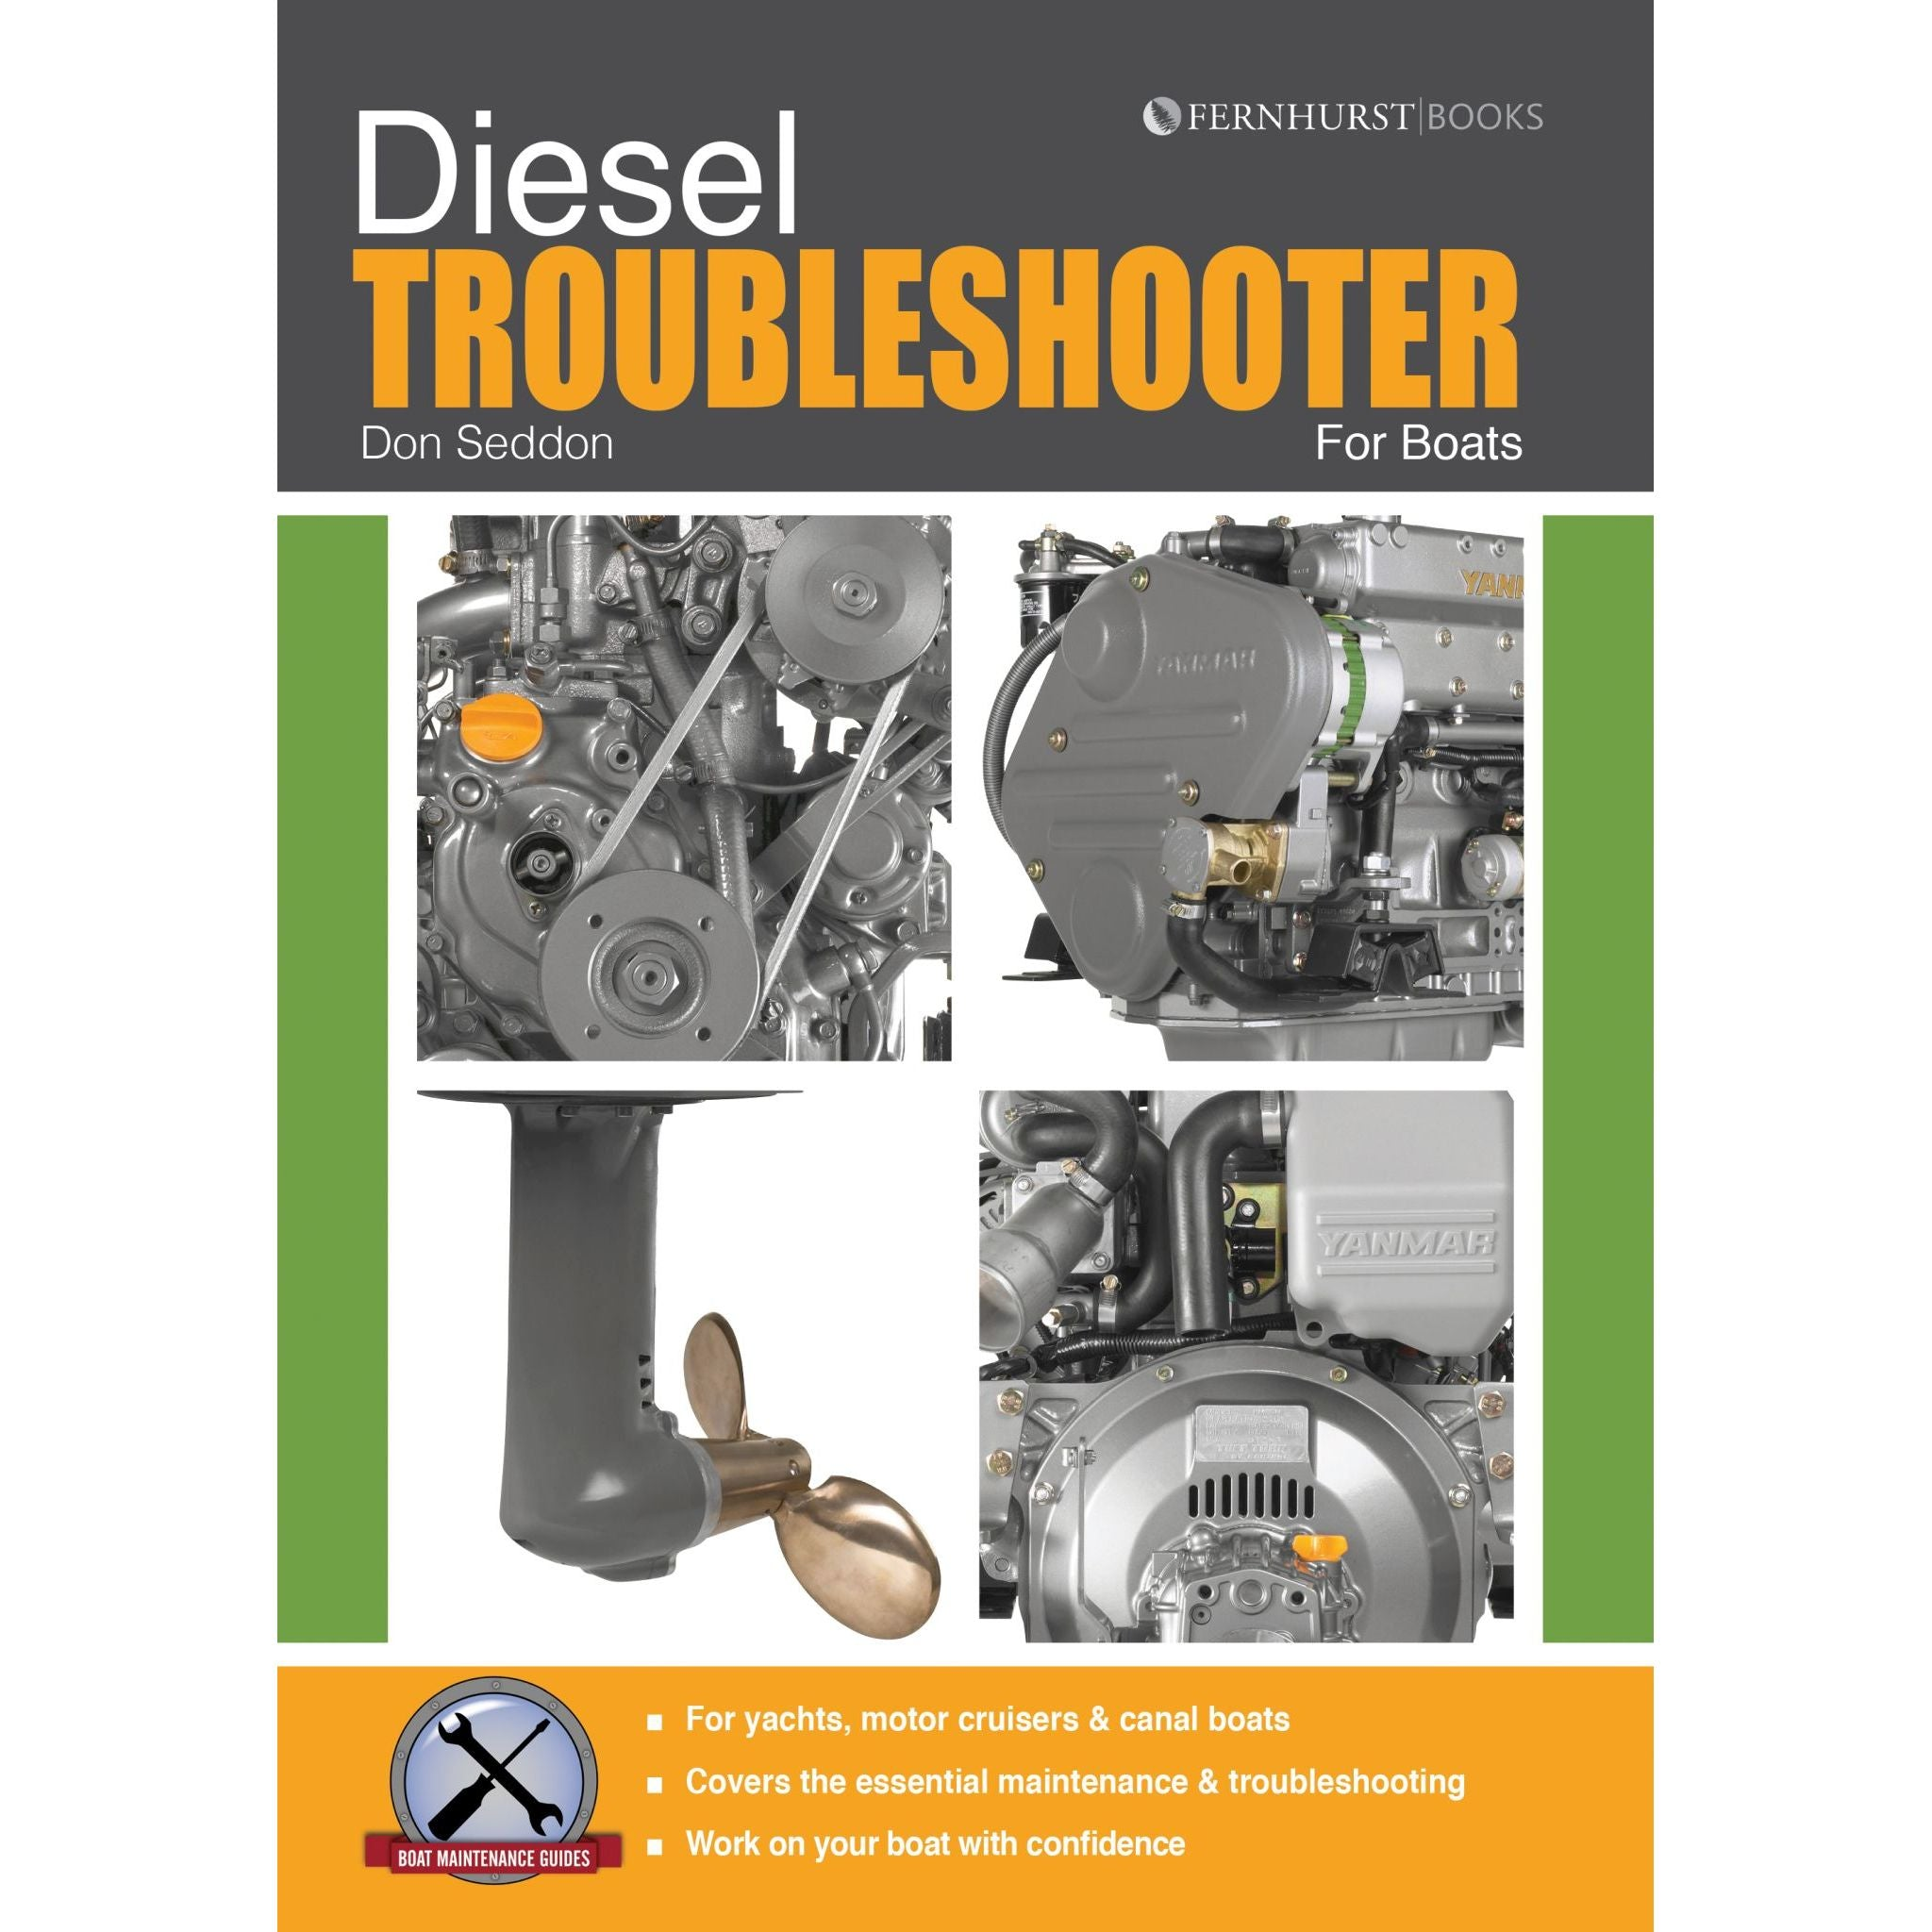 Diesel Troubleshooter for Boats